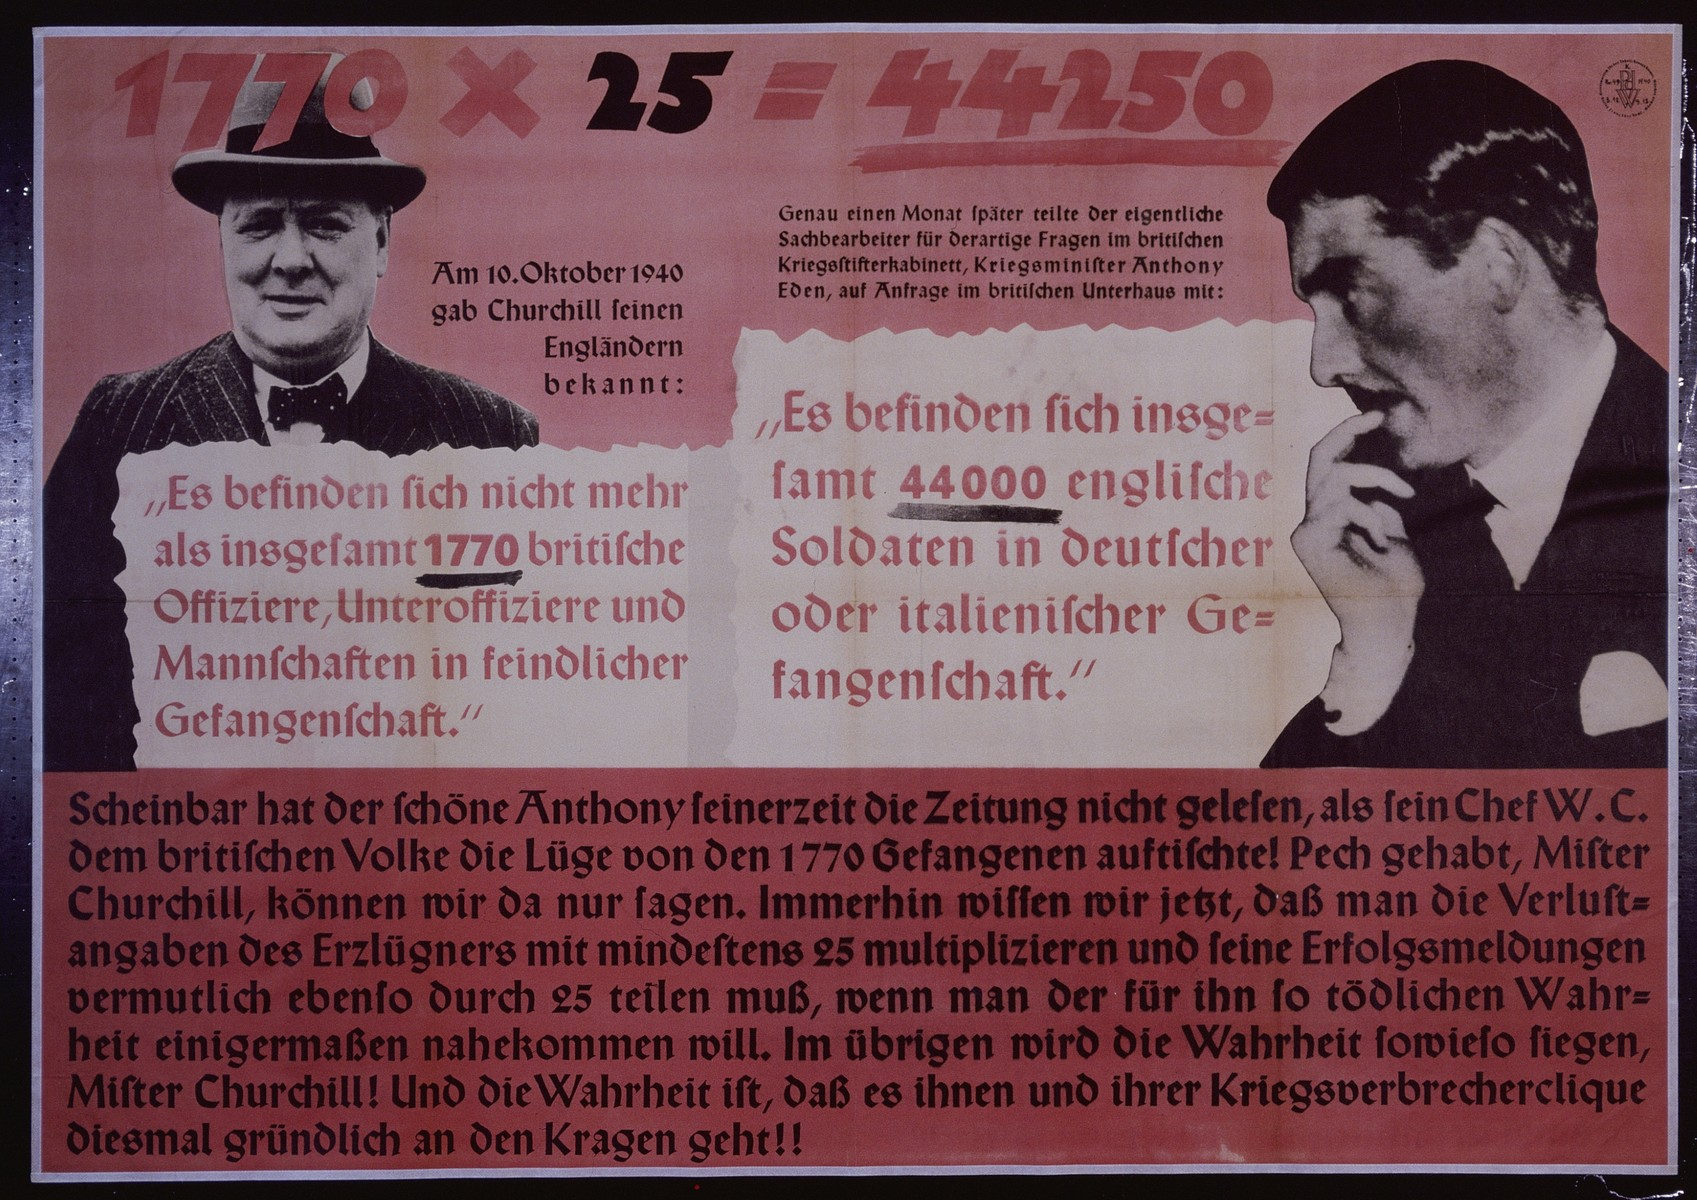 """Nazi propaganda poster entitled, """"1770 x 25 = 44250,"""" issued by the """"Parole der Woche,"""" a wall newspaper (Wandzeitung) published by the National Socialist Party propaganda office in Munich."""